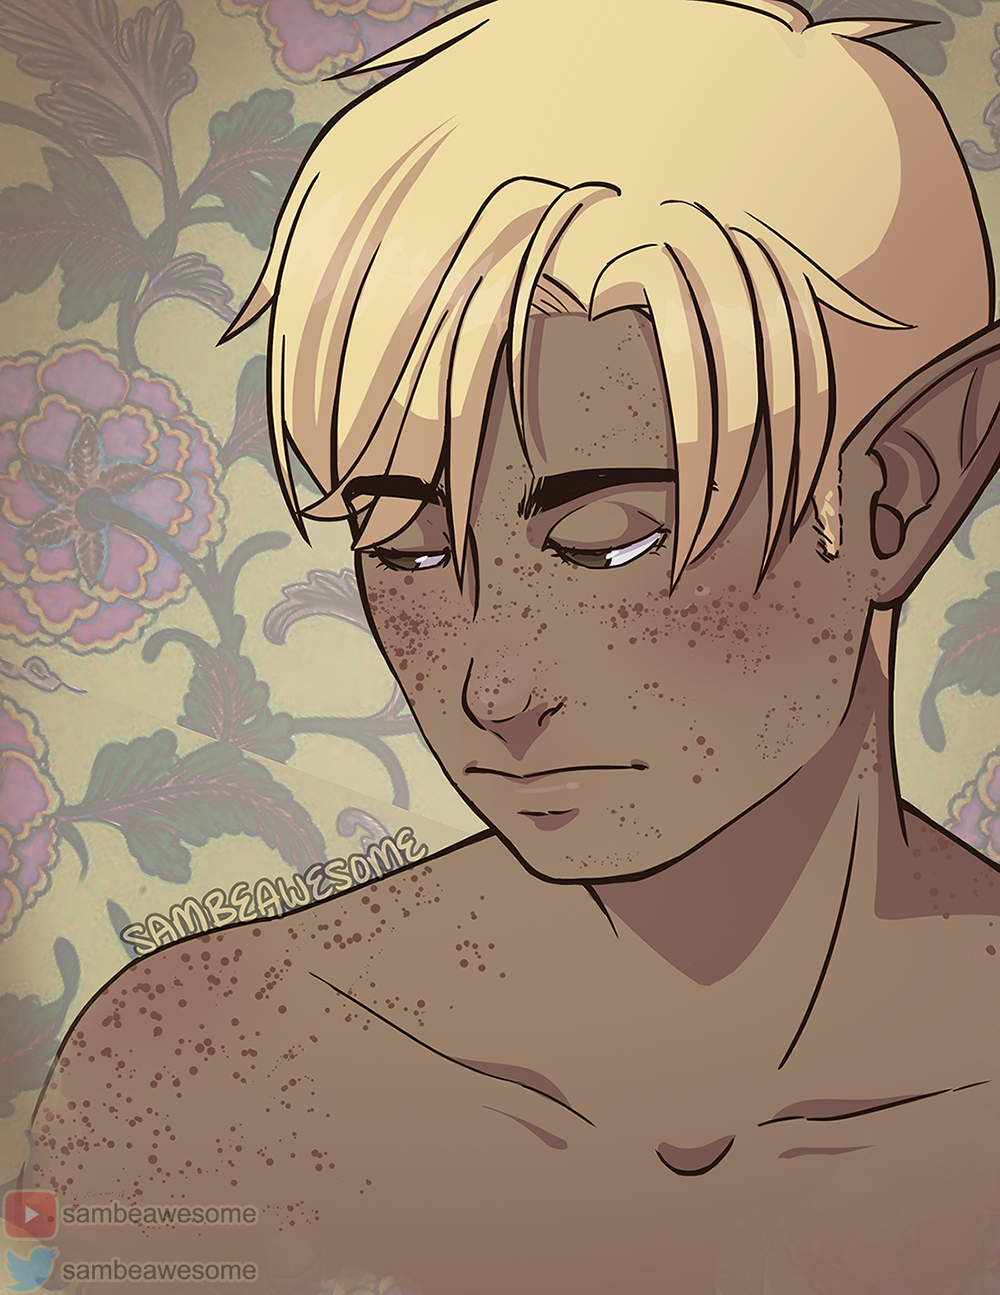 - The freckles on his skin! Not only is it great for skin texture, especially on realistic pieces, but it works great for adding in lots of cute freckles! (You can see it in action in the recording of this artwork!)